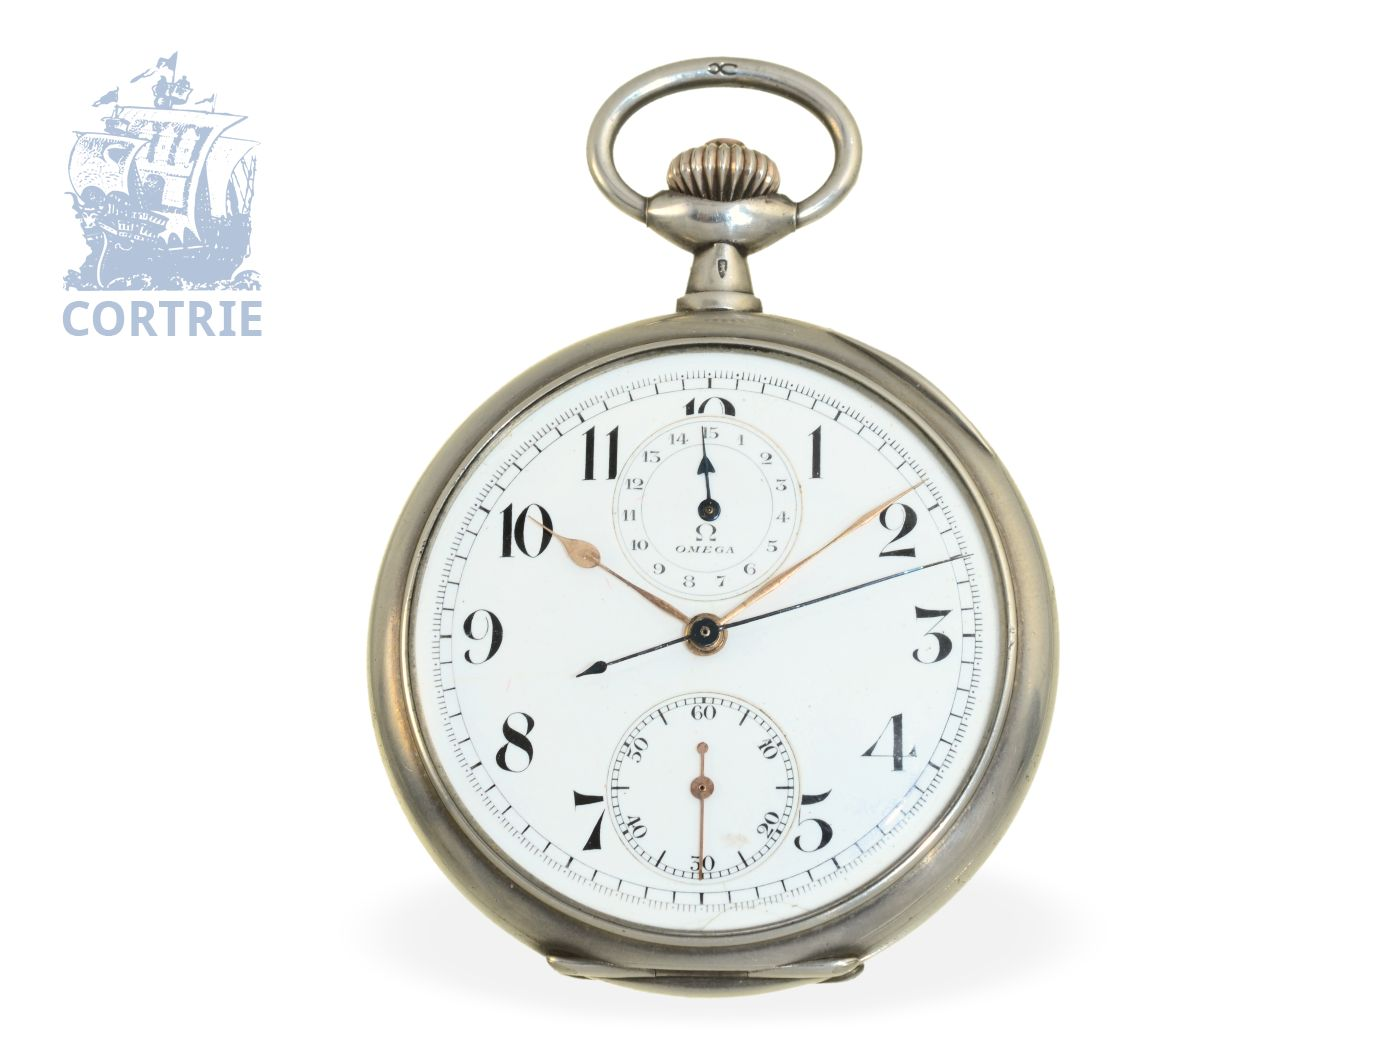 Pocket watch: fine Omega pocket watch chronograph with register, silver case, ca. 1915-